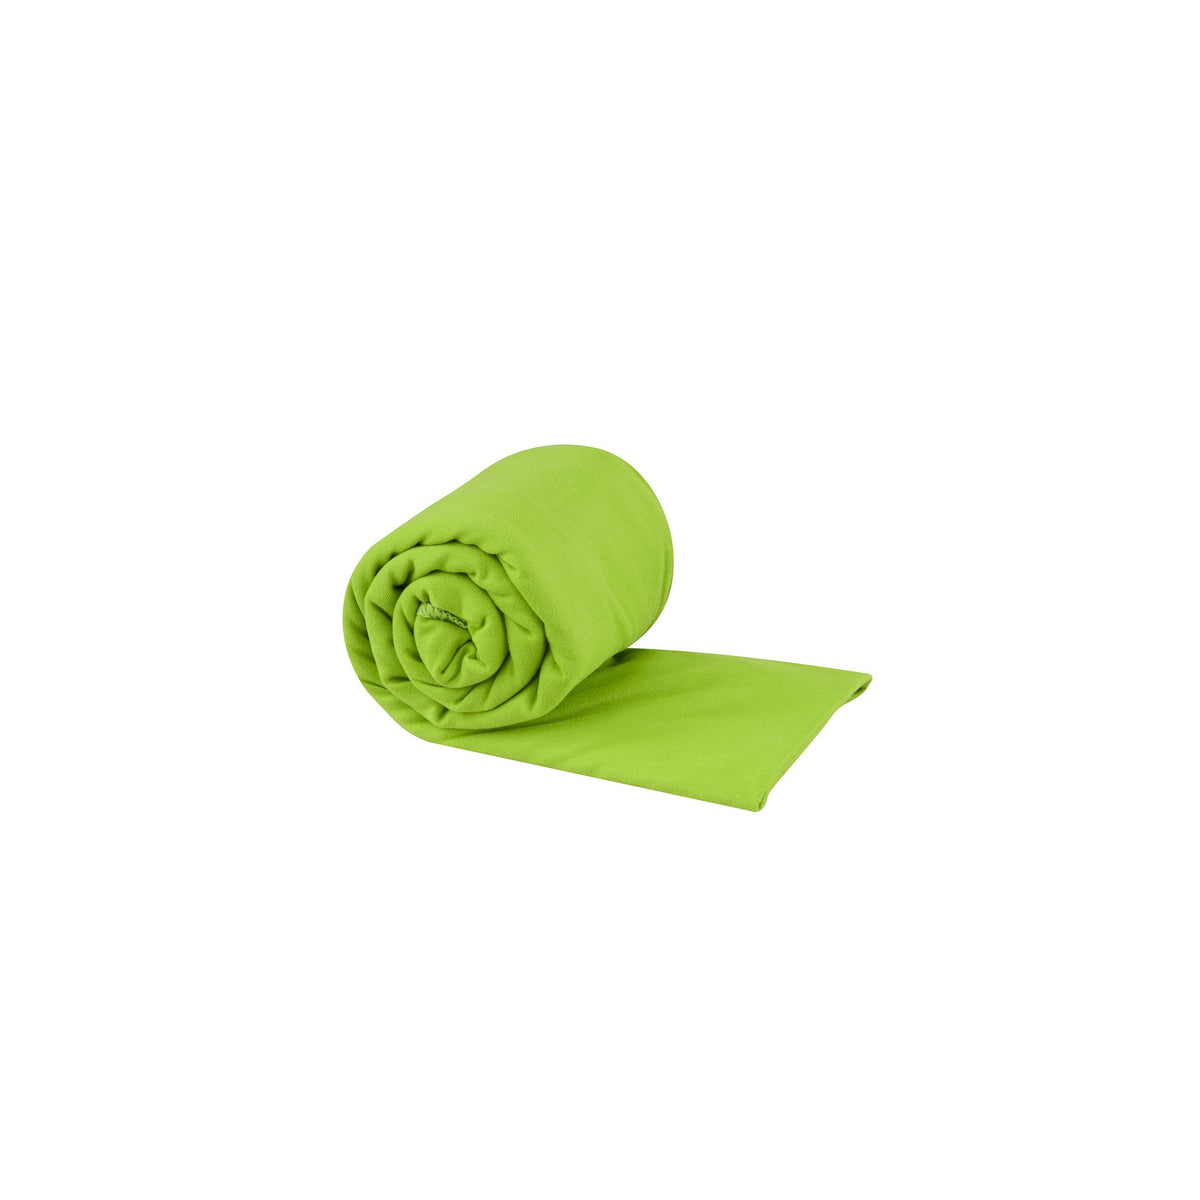 Sea To Summit Pocket Towel in Green